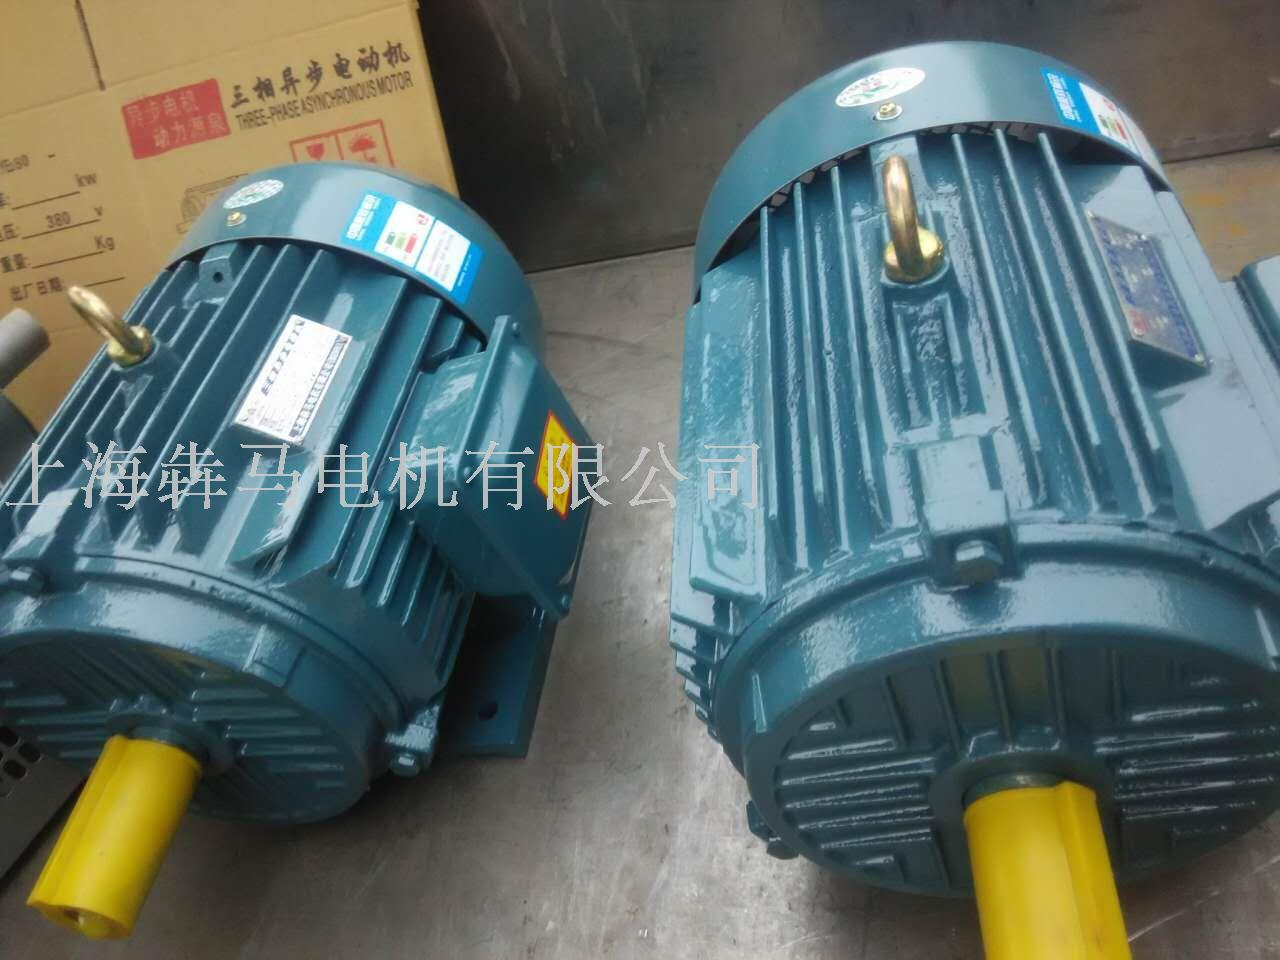 USD 176.12] Two-speed motor 1 5kw YD112M 8 4-pole 1 5 2 4KW variable ...